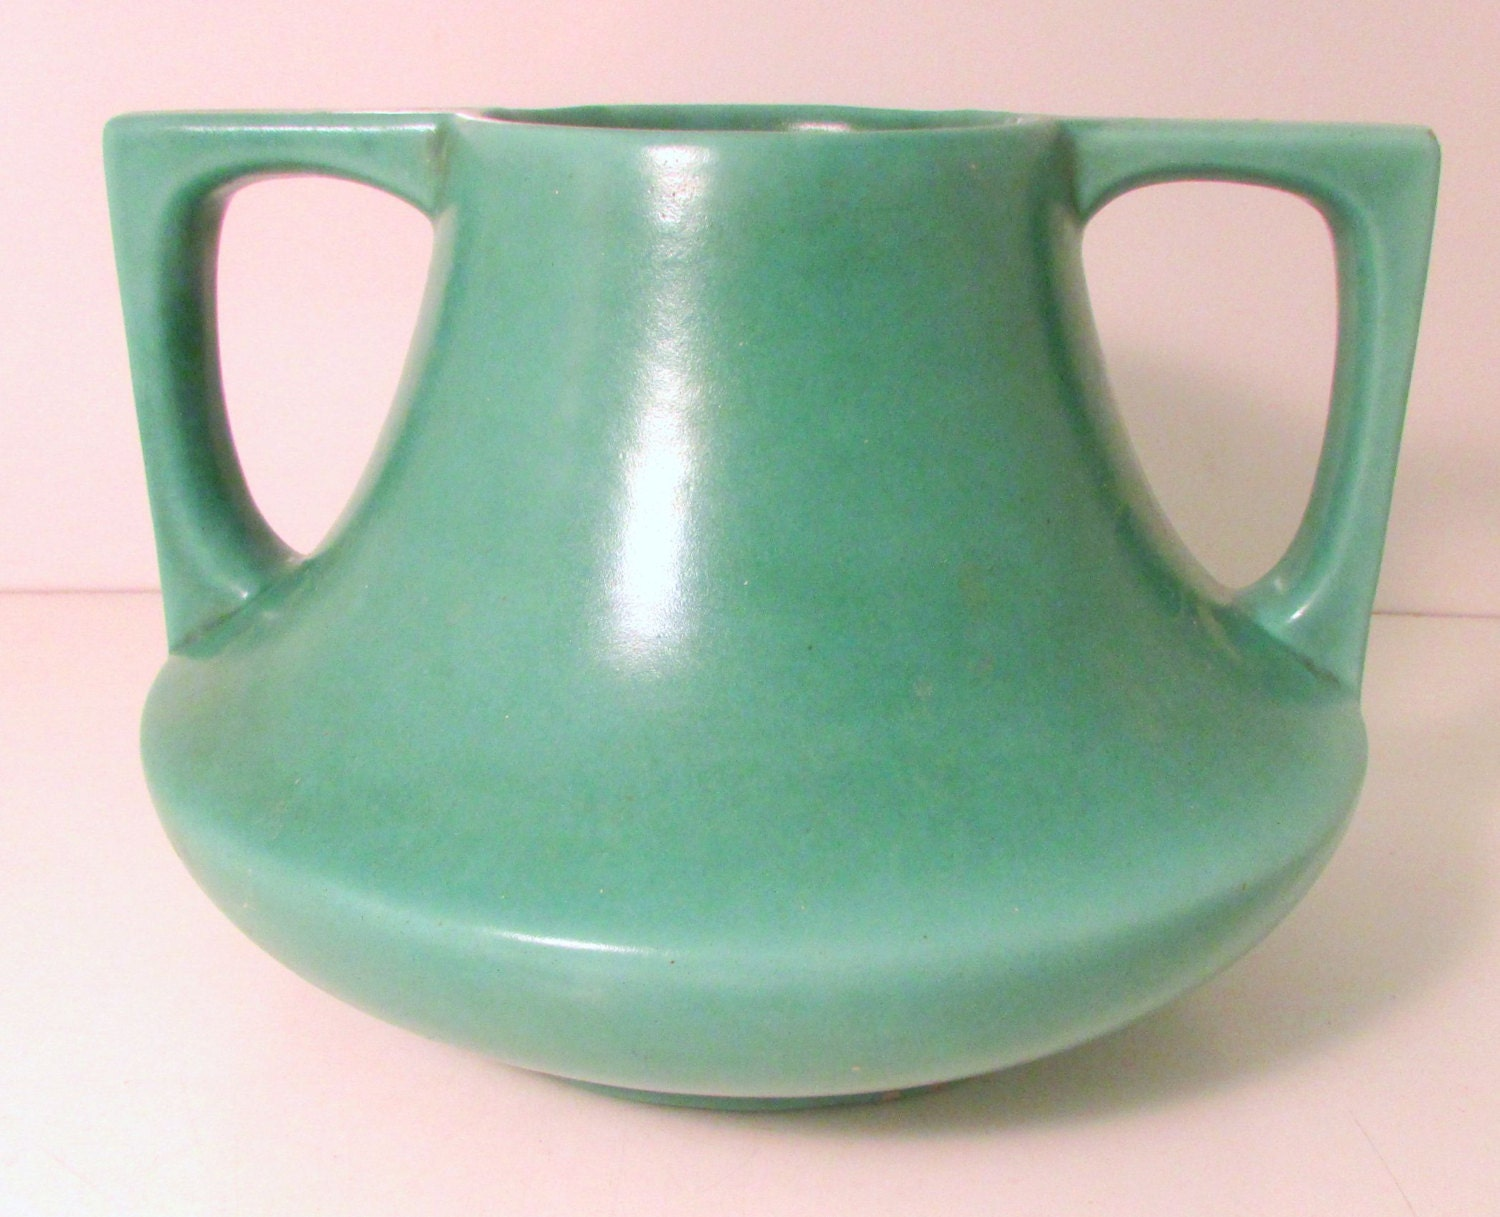 Vintage arts and crafts pottery vase haeger eve vase green for Arts and crafts pottery